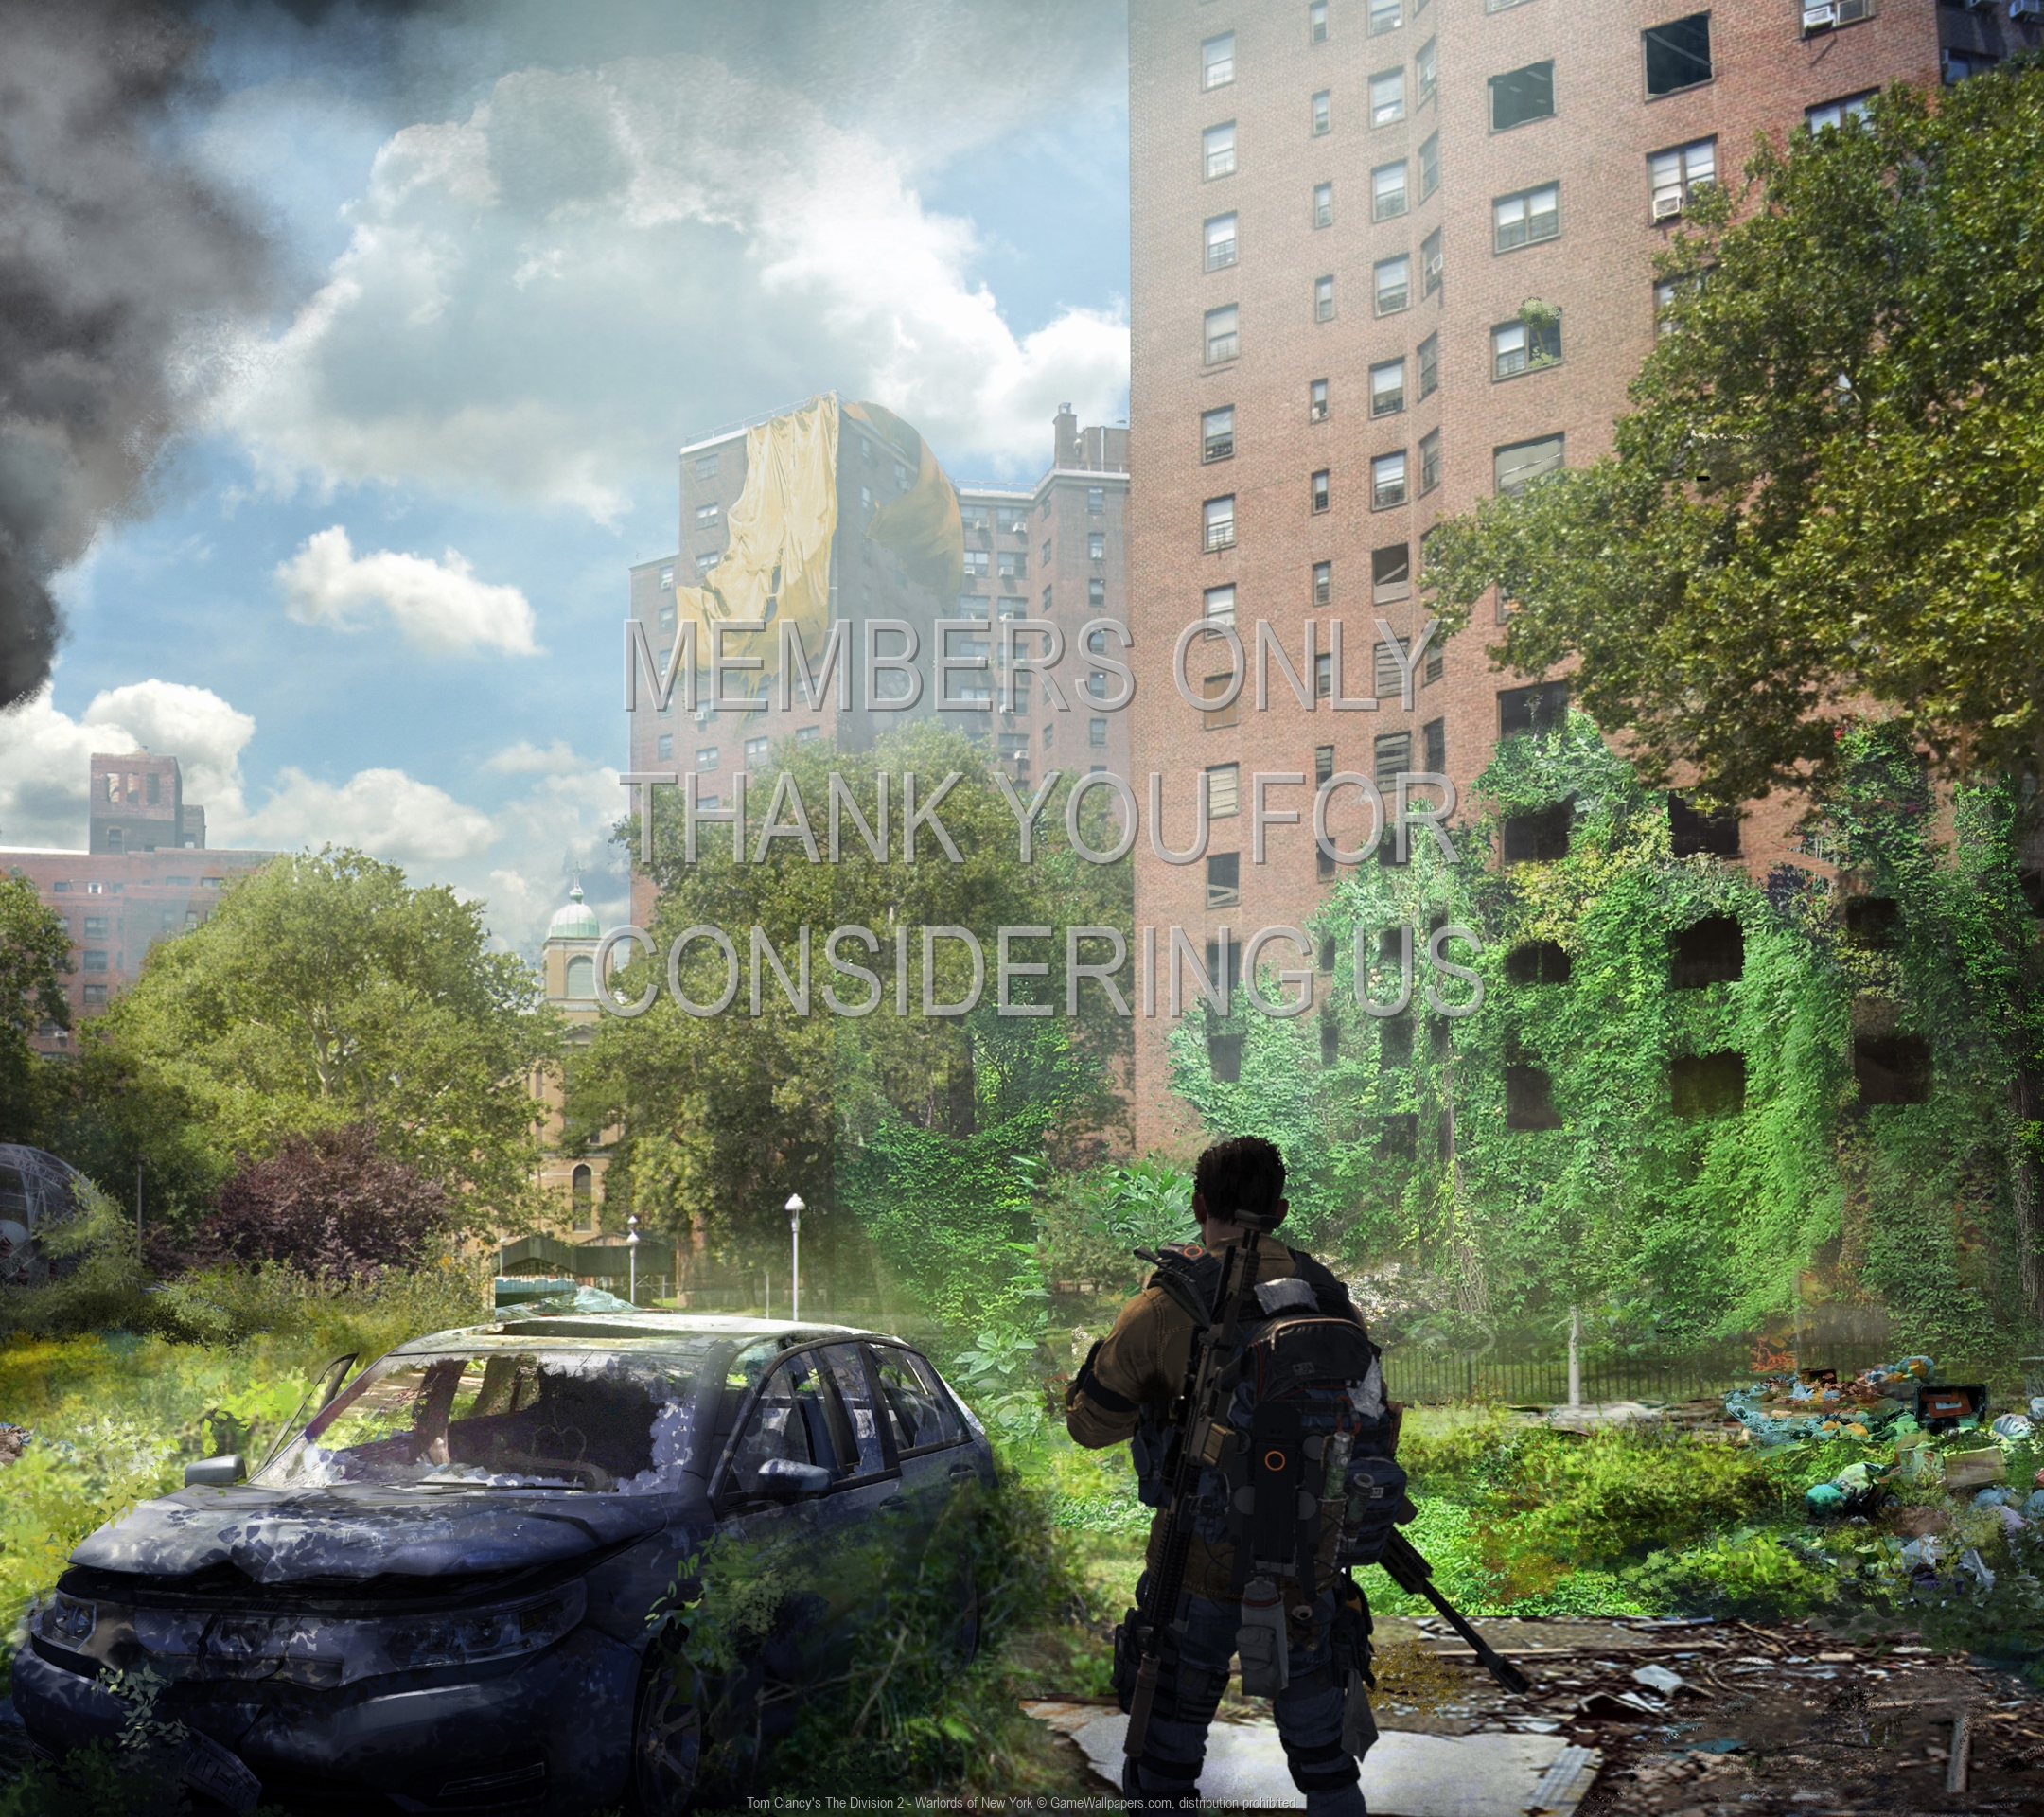 Tom Clancy's The Division 2 - Warlords of New York 1920x1080 Mobile wallpaper or background 03